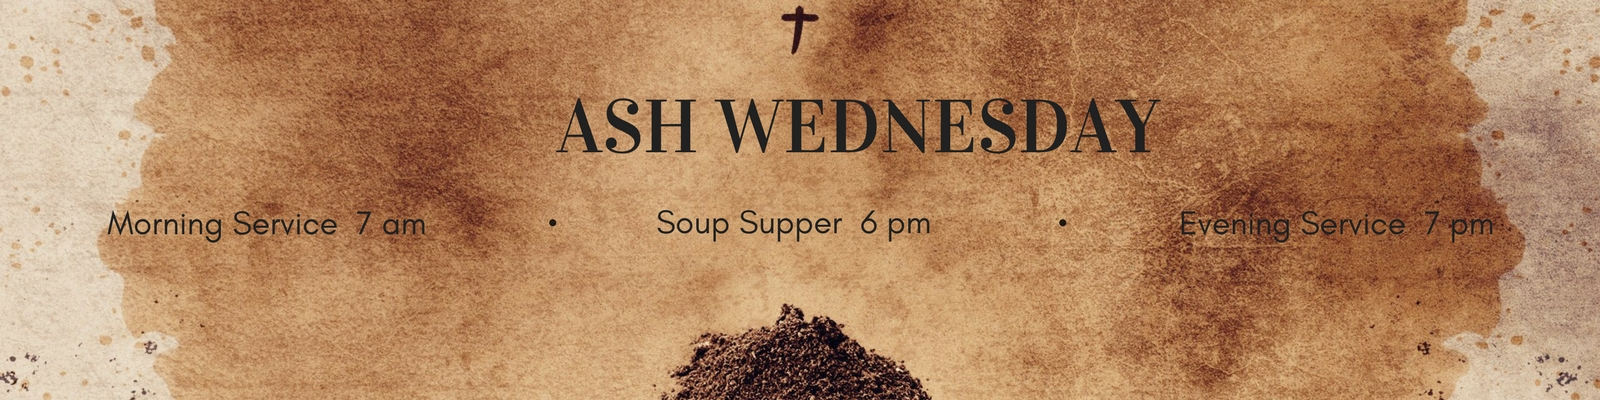 Ash Wednesday morning service at 7 am, evening service at 7 pm and soup supper at 6 pm